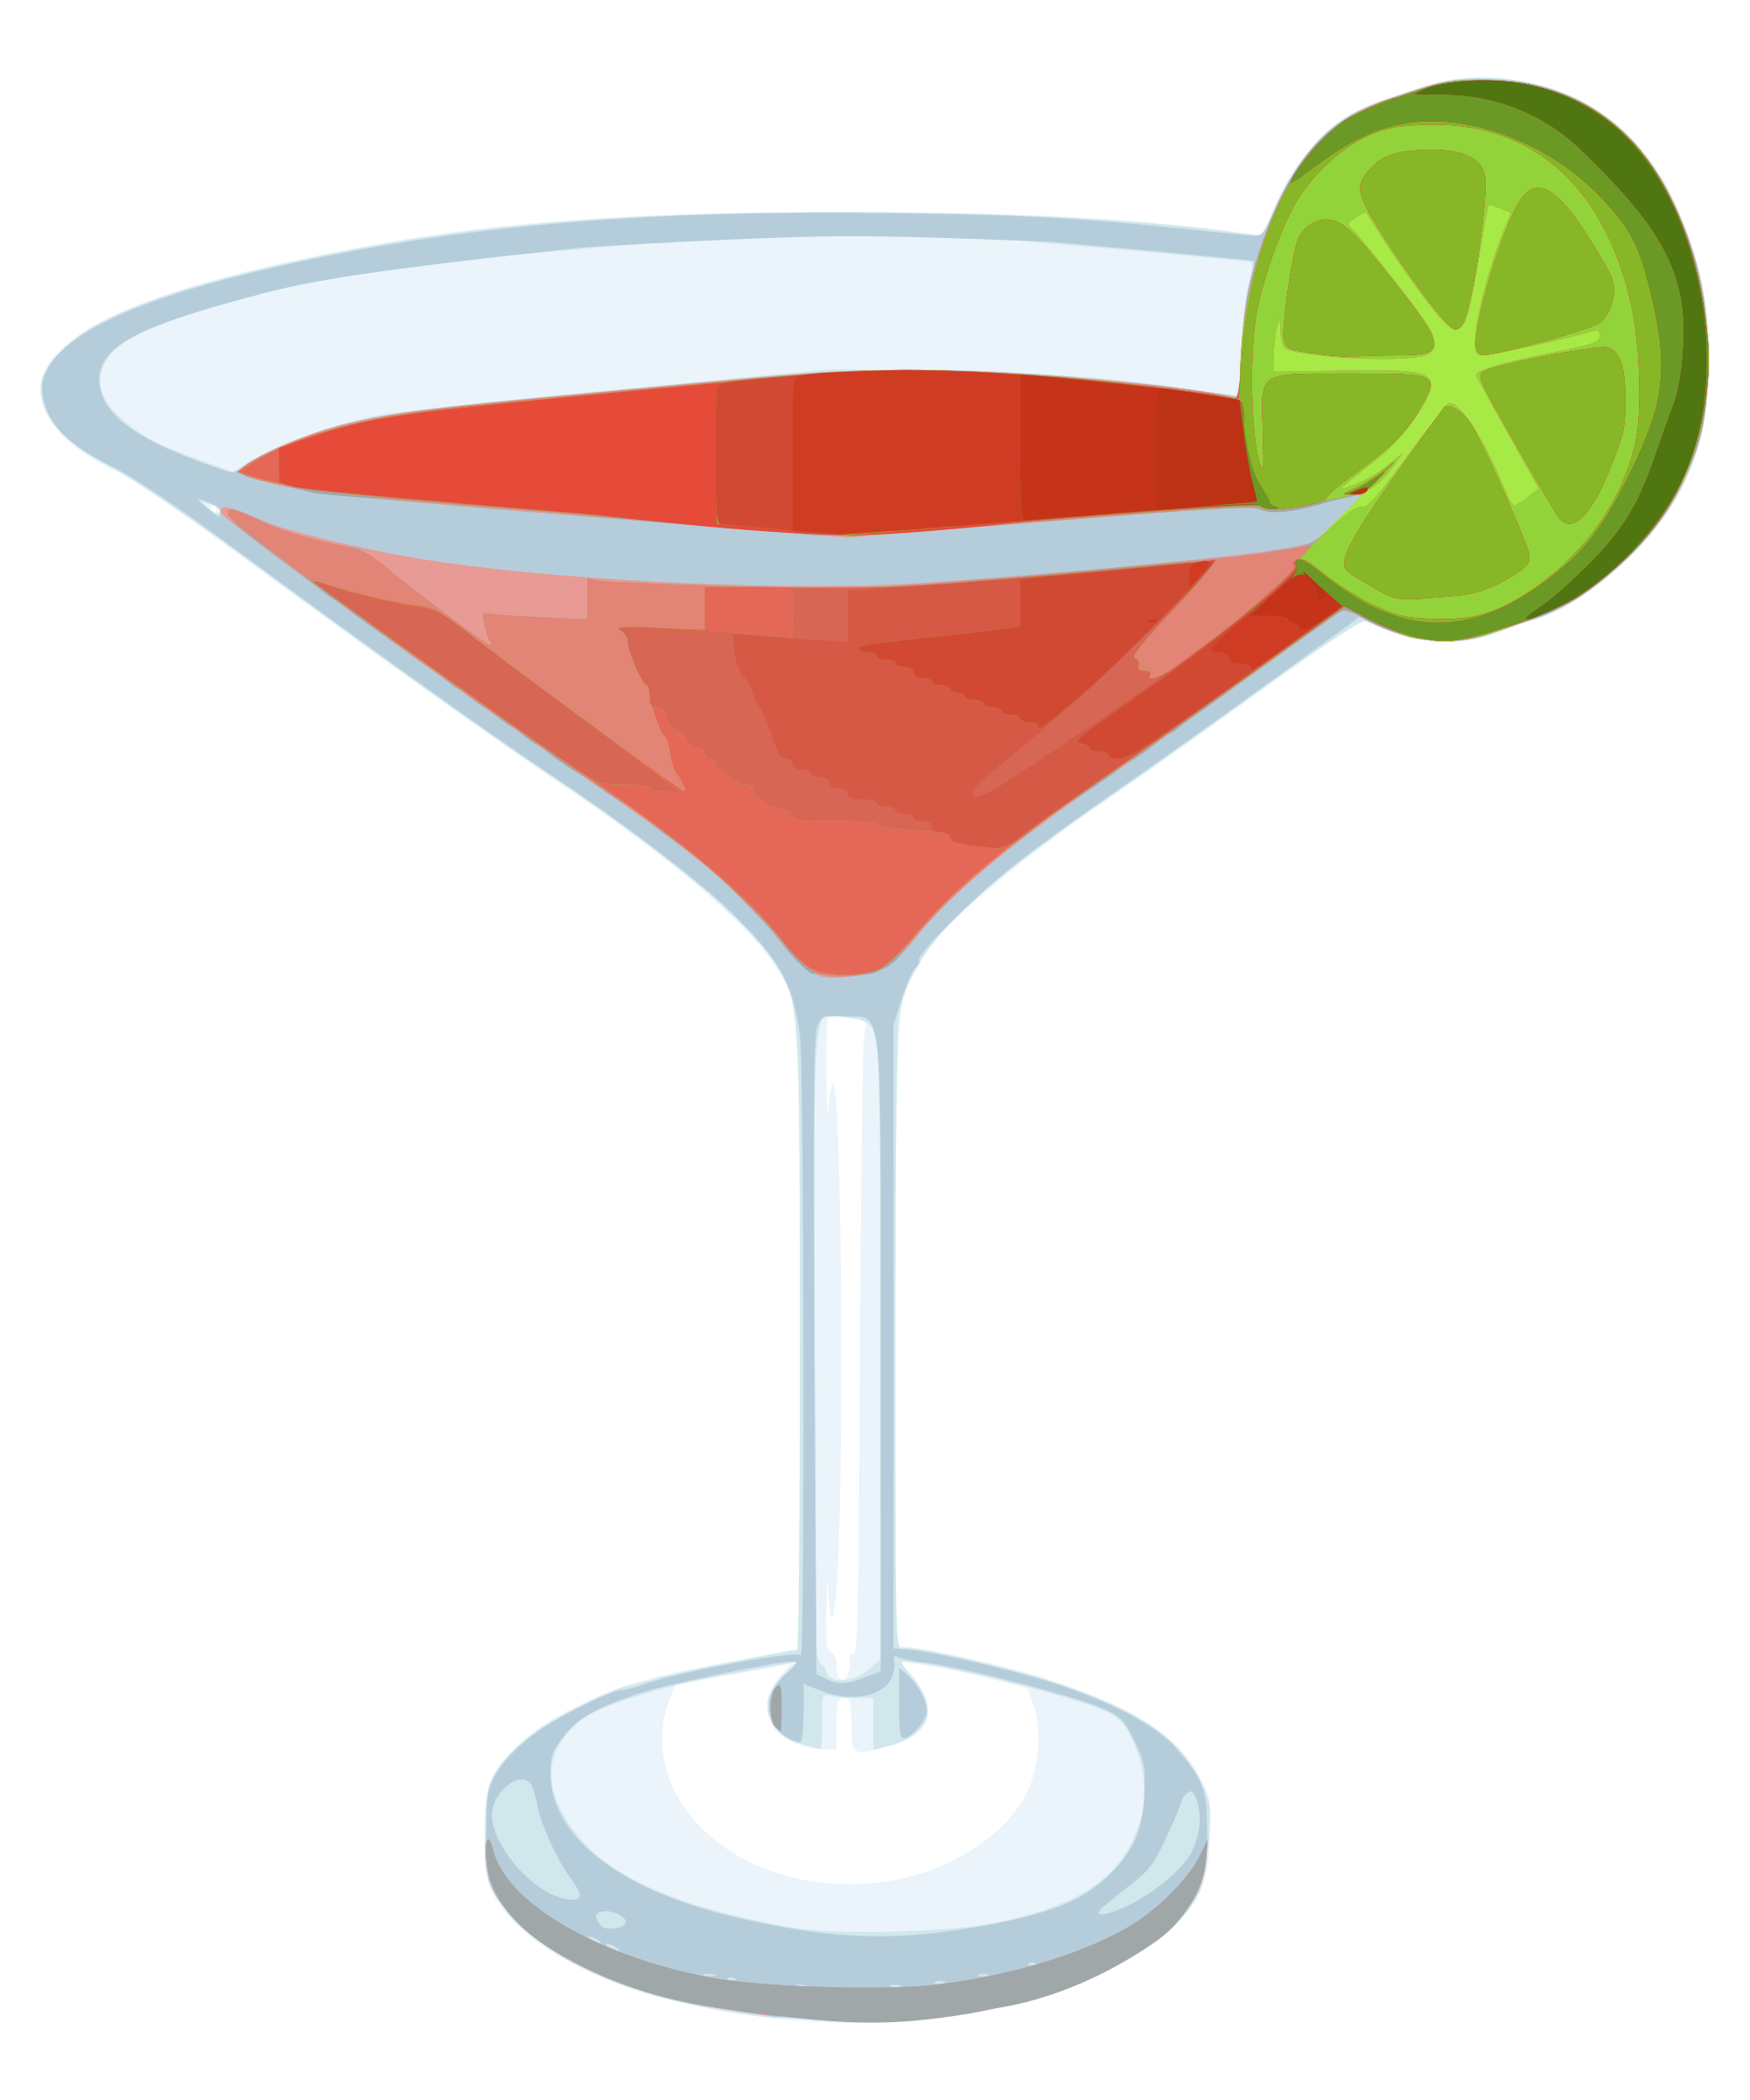 Cocktail Clipart No Background & Free Clip Art Images #26397.